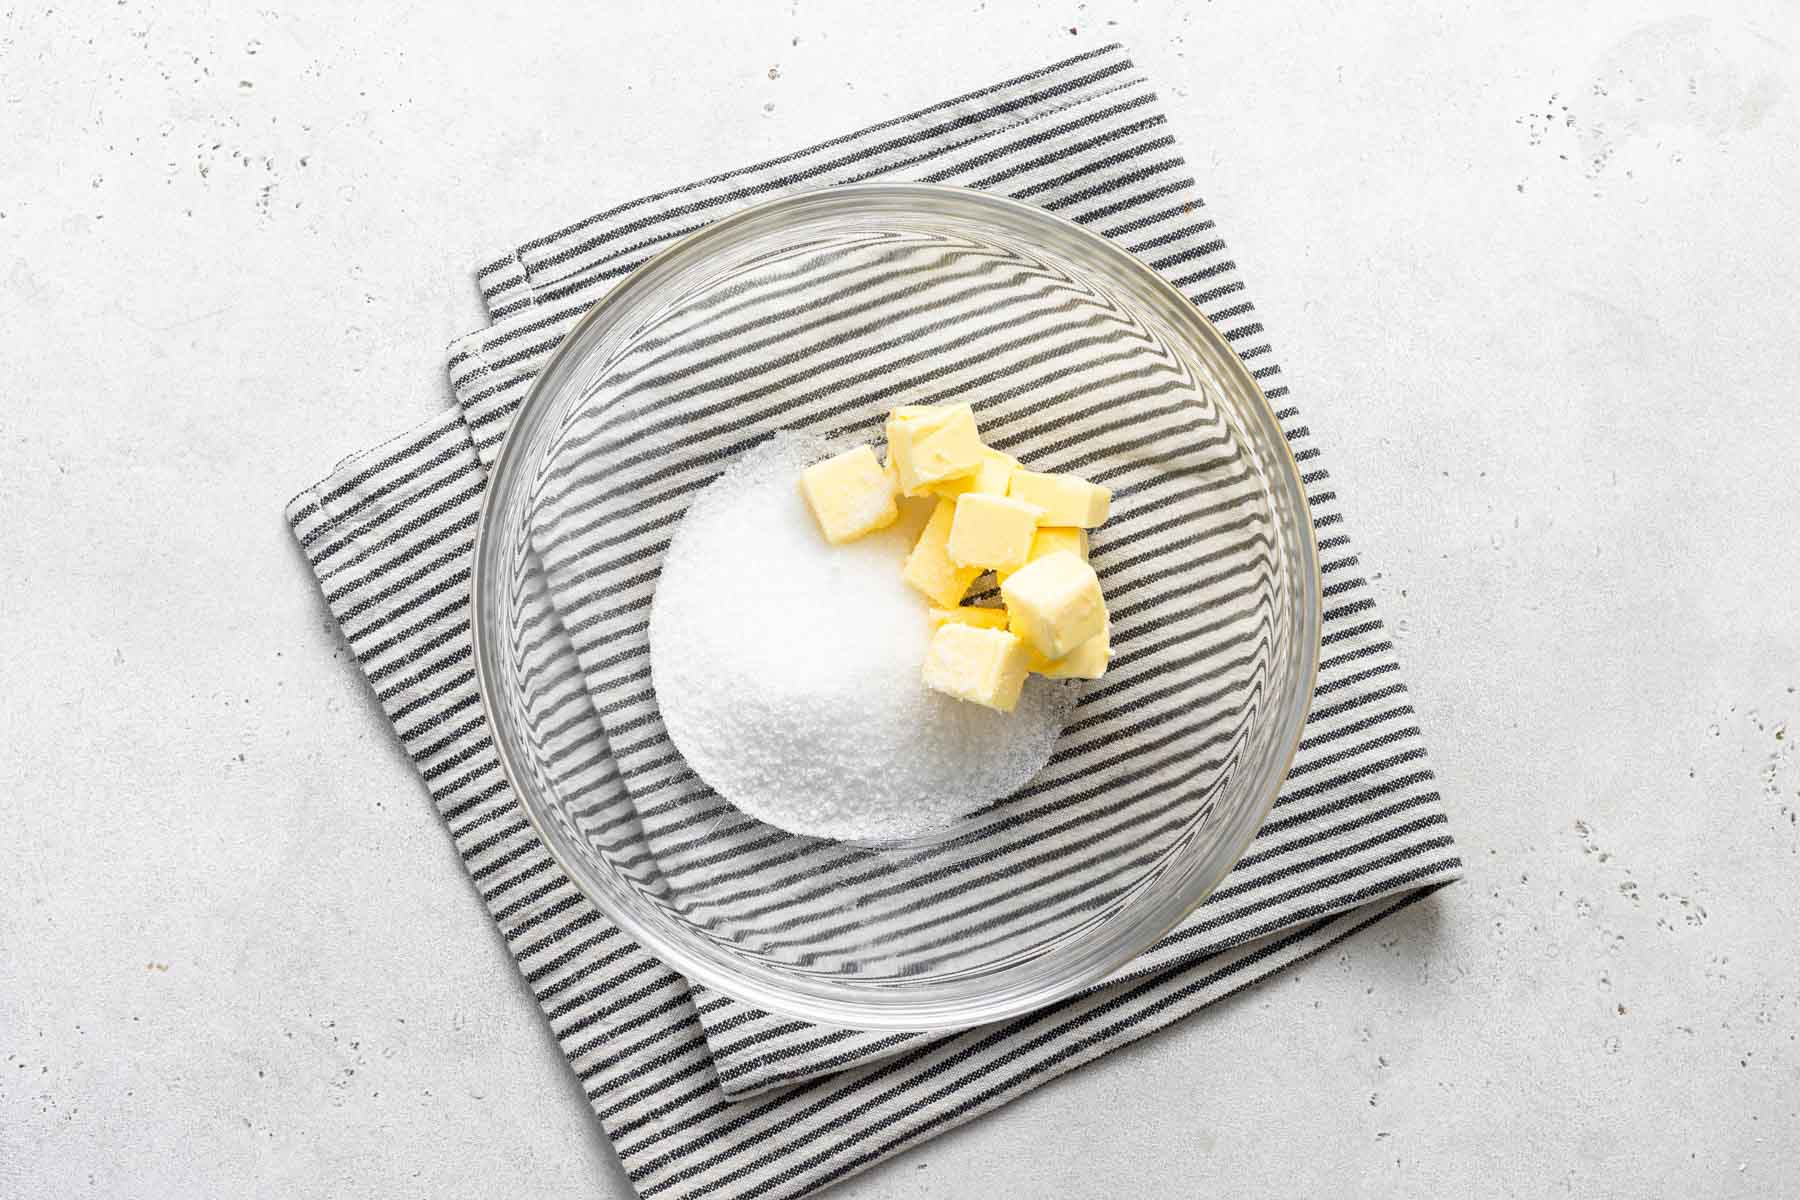 Diced butter and granulated sugar in clear glass bowl.